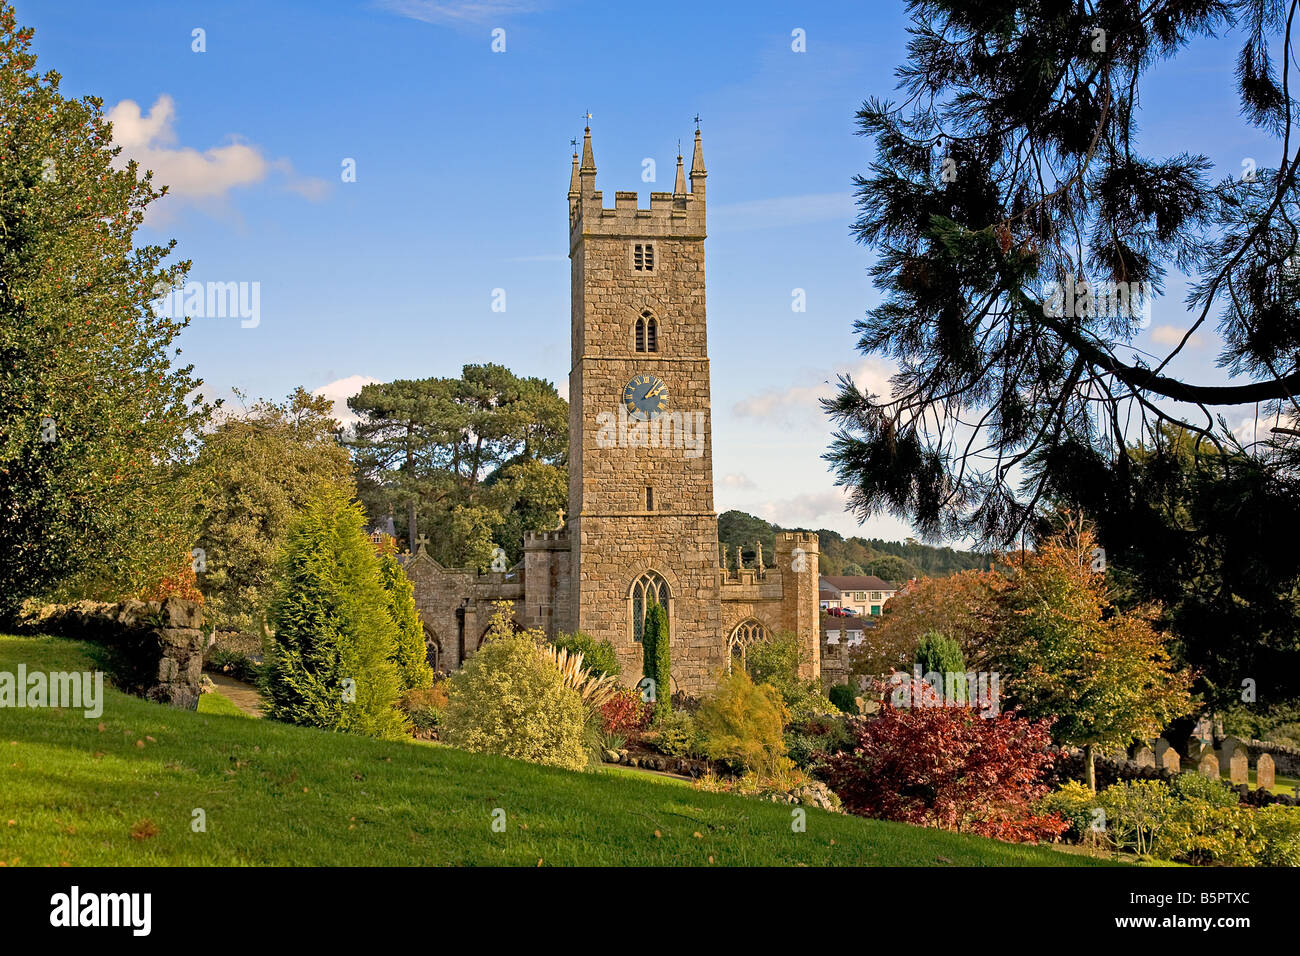 Church in Bovey Tracey, Devon, UK - Stock Image